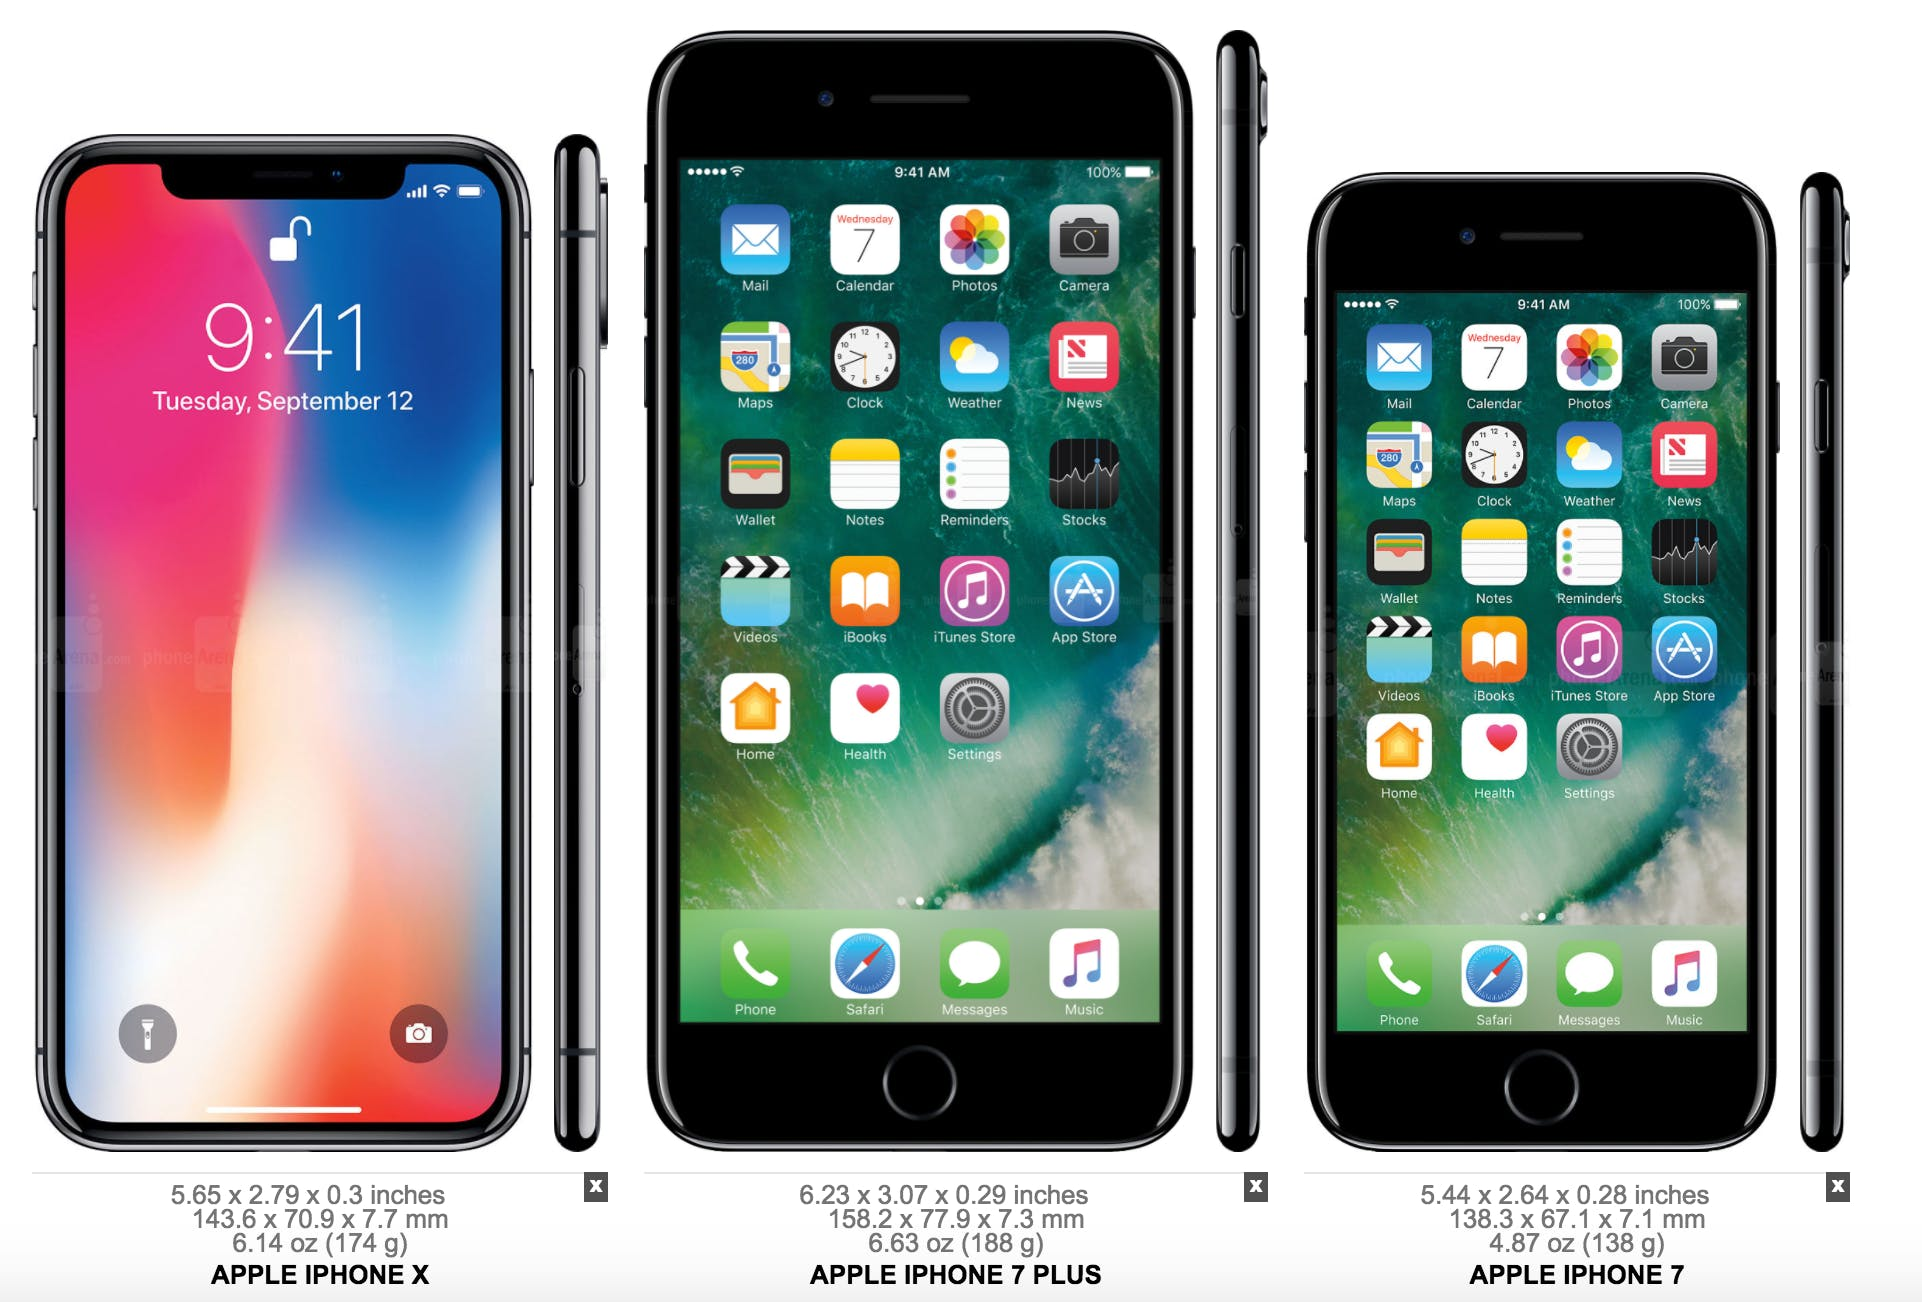 apple iphone 10. this is also apple\u0027s thickest phone since its colorful line of iphone 5c models, so maybe these won\u0027t be privy to bending like the 6. apple iphone 10